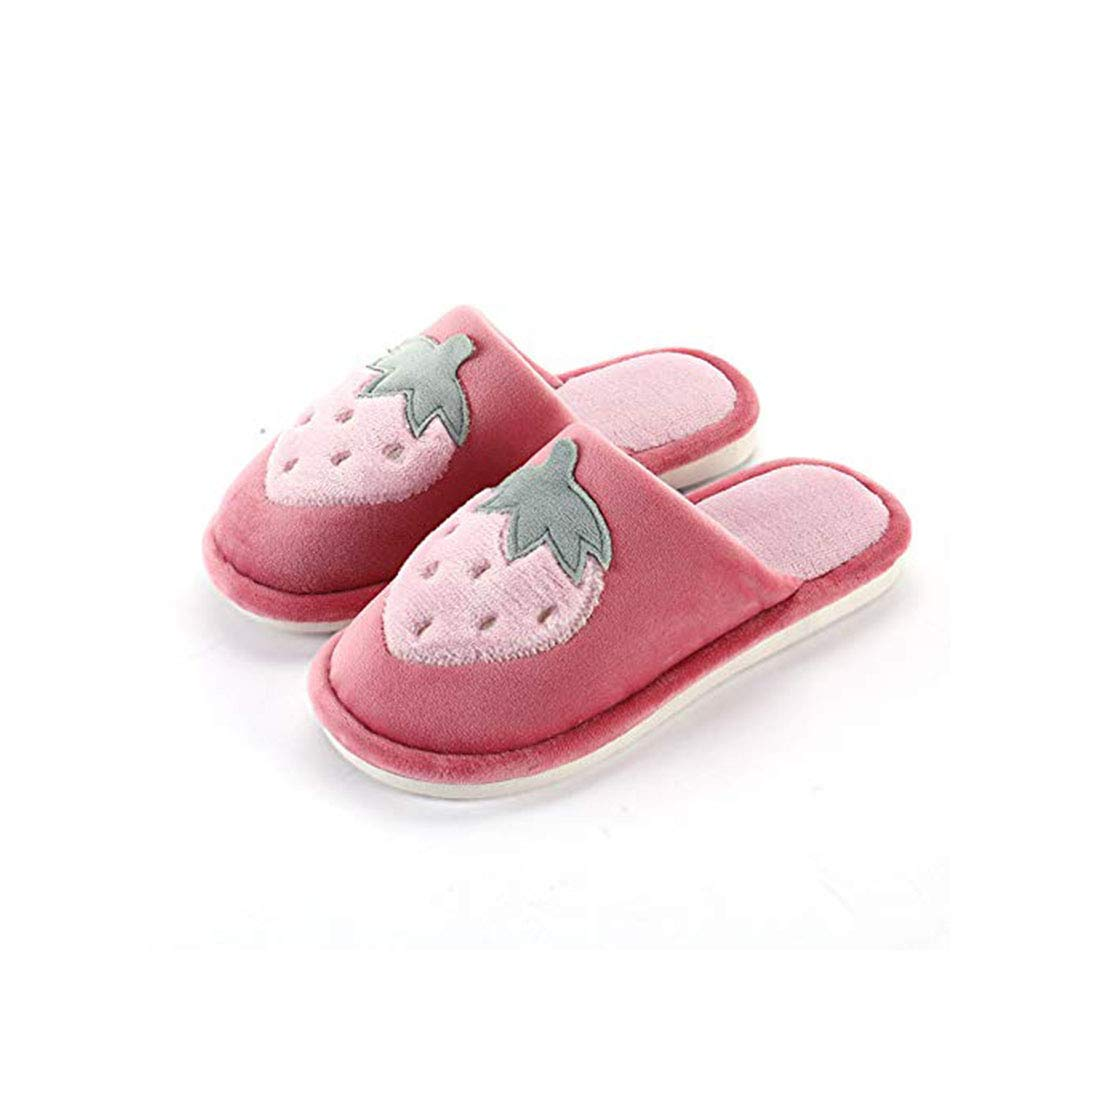 Strawberry Cotton Slippers Womens Indoor Cute Slippers Soft Slip Shoes Christmas New Year Thanksgiving Gifts